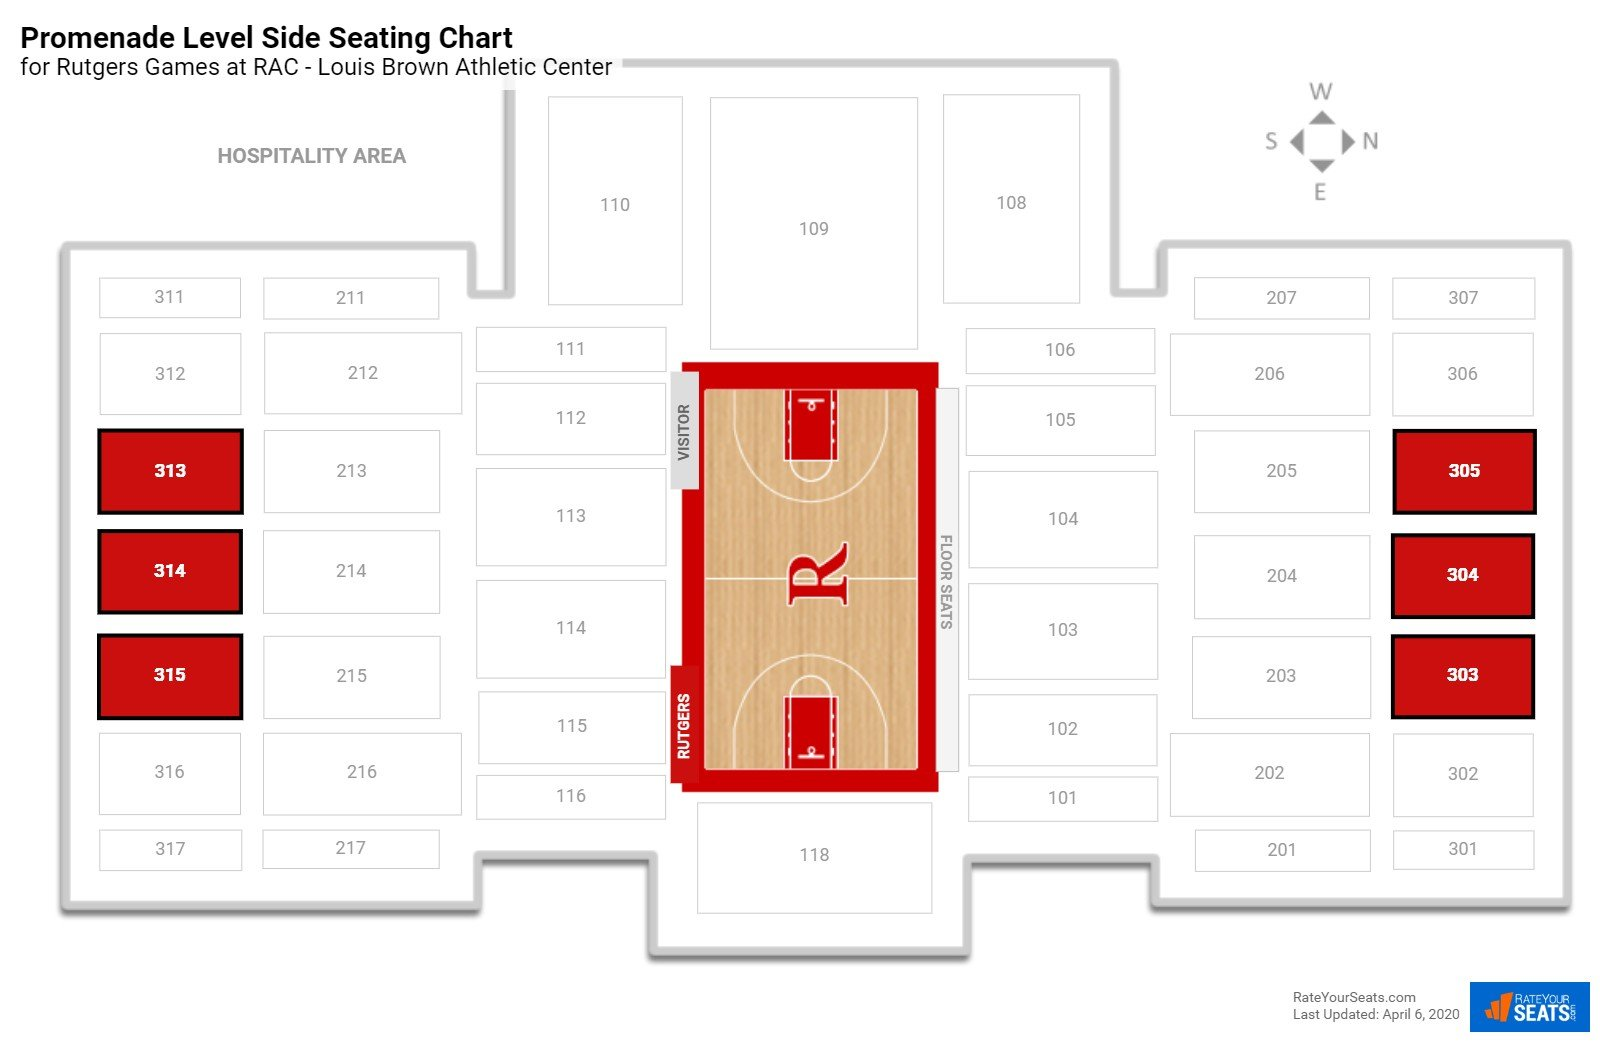 RAC - Louis Brown Athletic Center Promenade Level Side seating chart